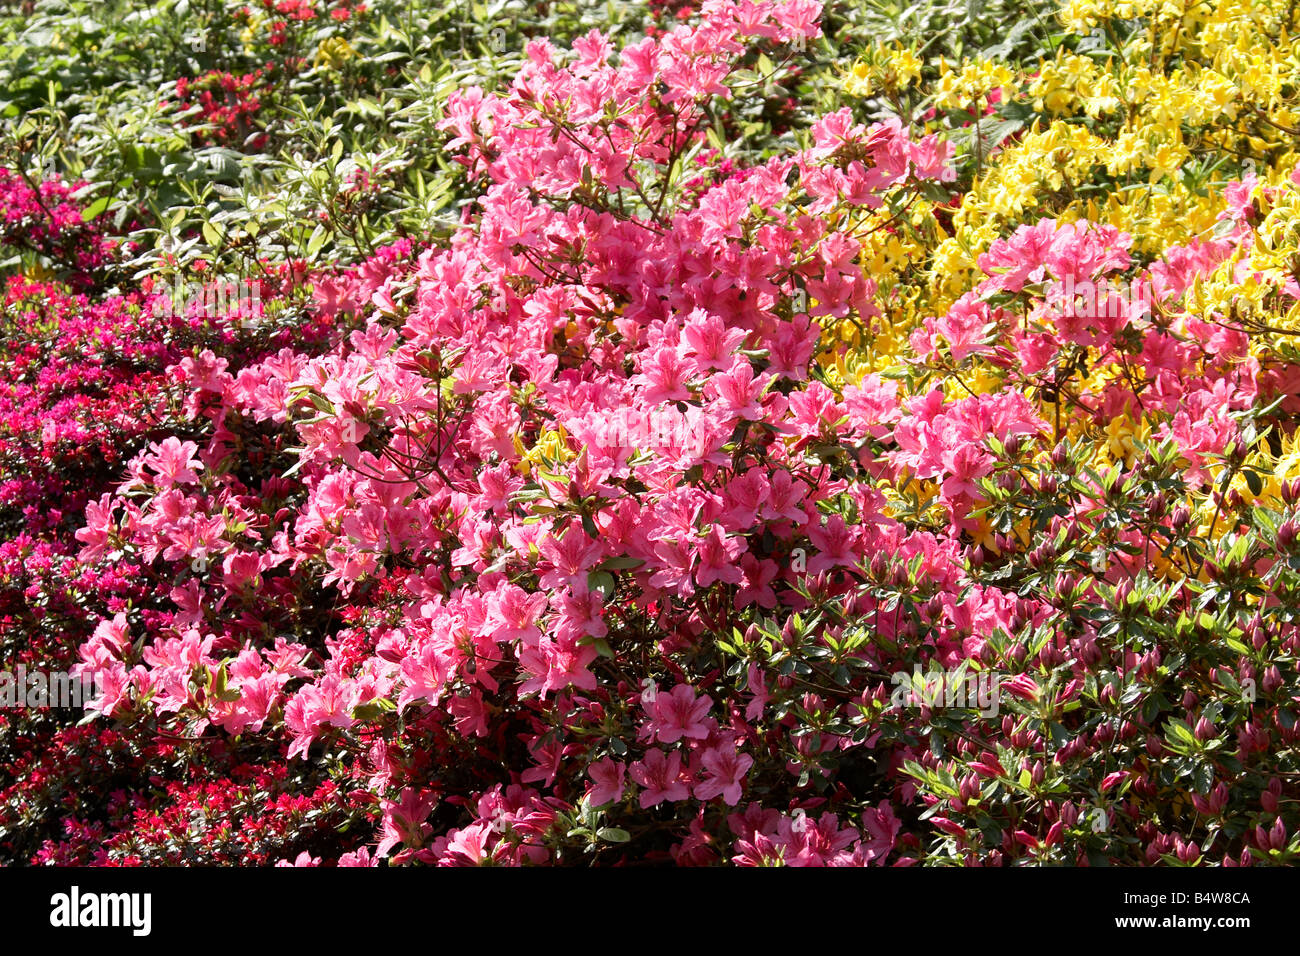 Pink Azaleas and Rhododendrons in full bloom at Kenwood House English Heritage Hampstead London NW3 England UK - Stock Image